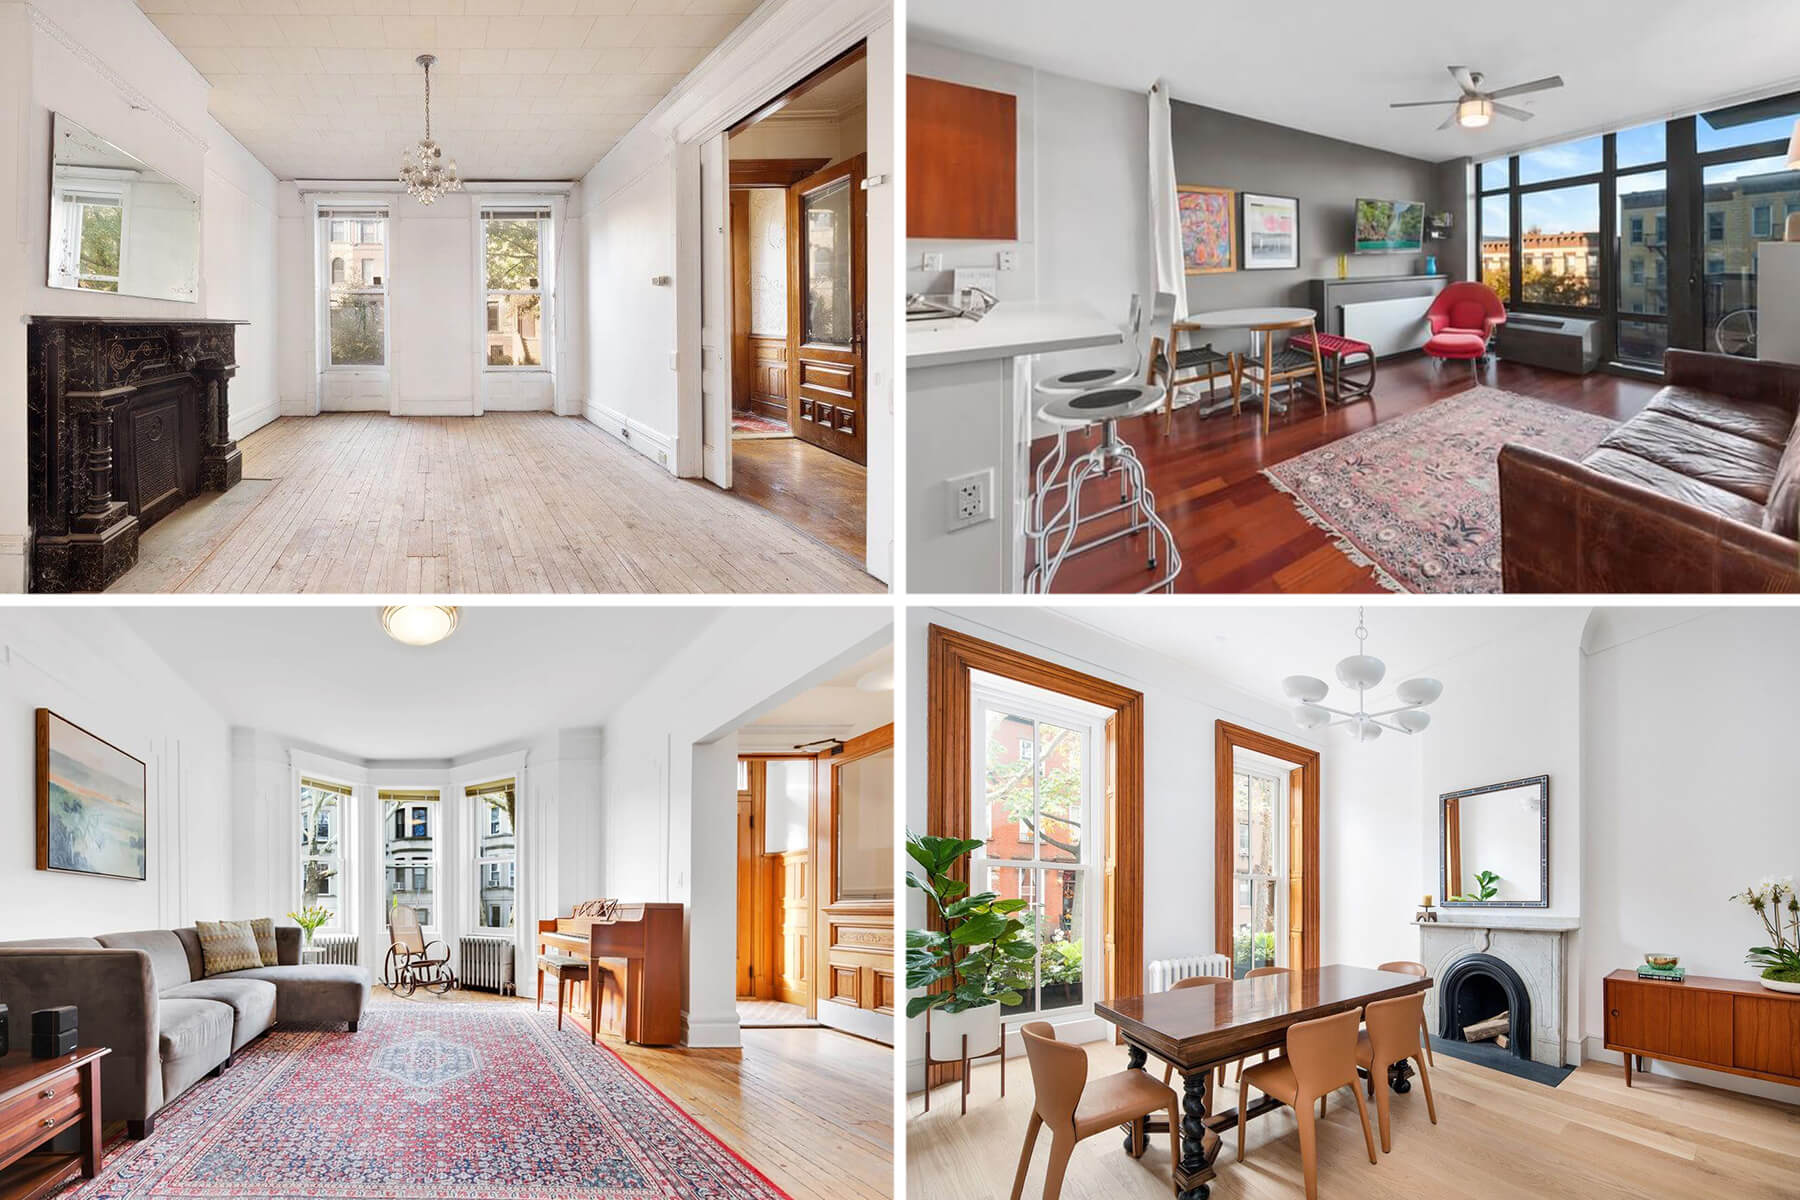 brooklyn-homes-for-sale-six-months-later-bed-stuy-park-slope-cobble-hill-windsor-terrace